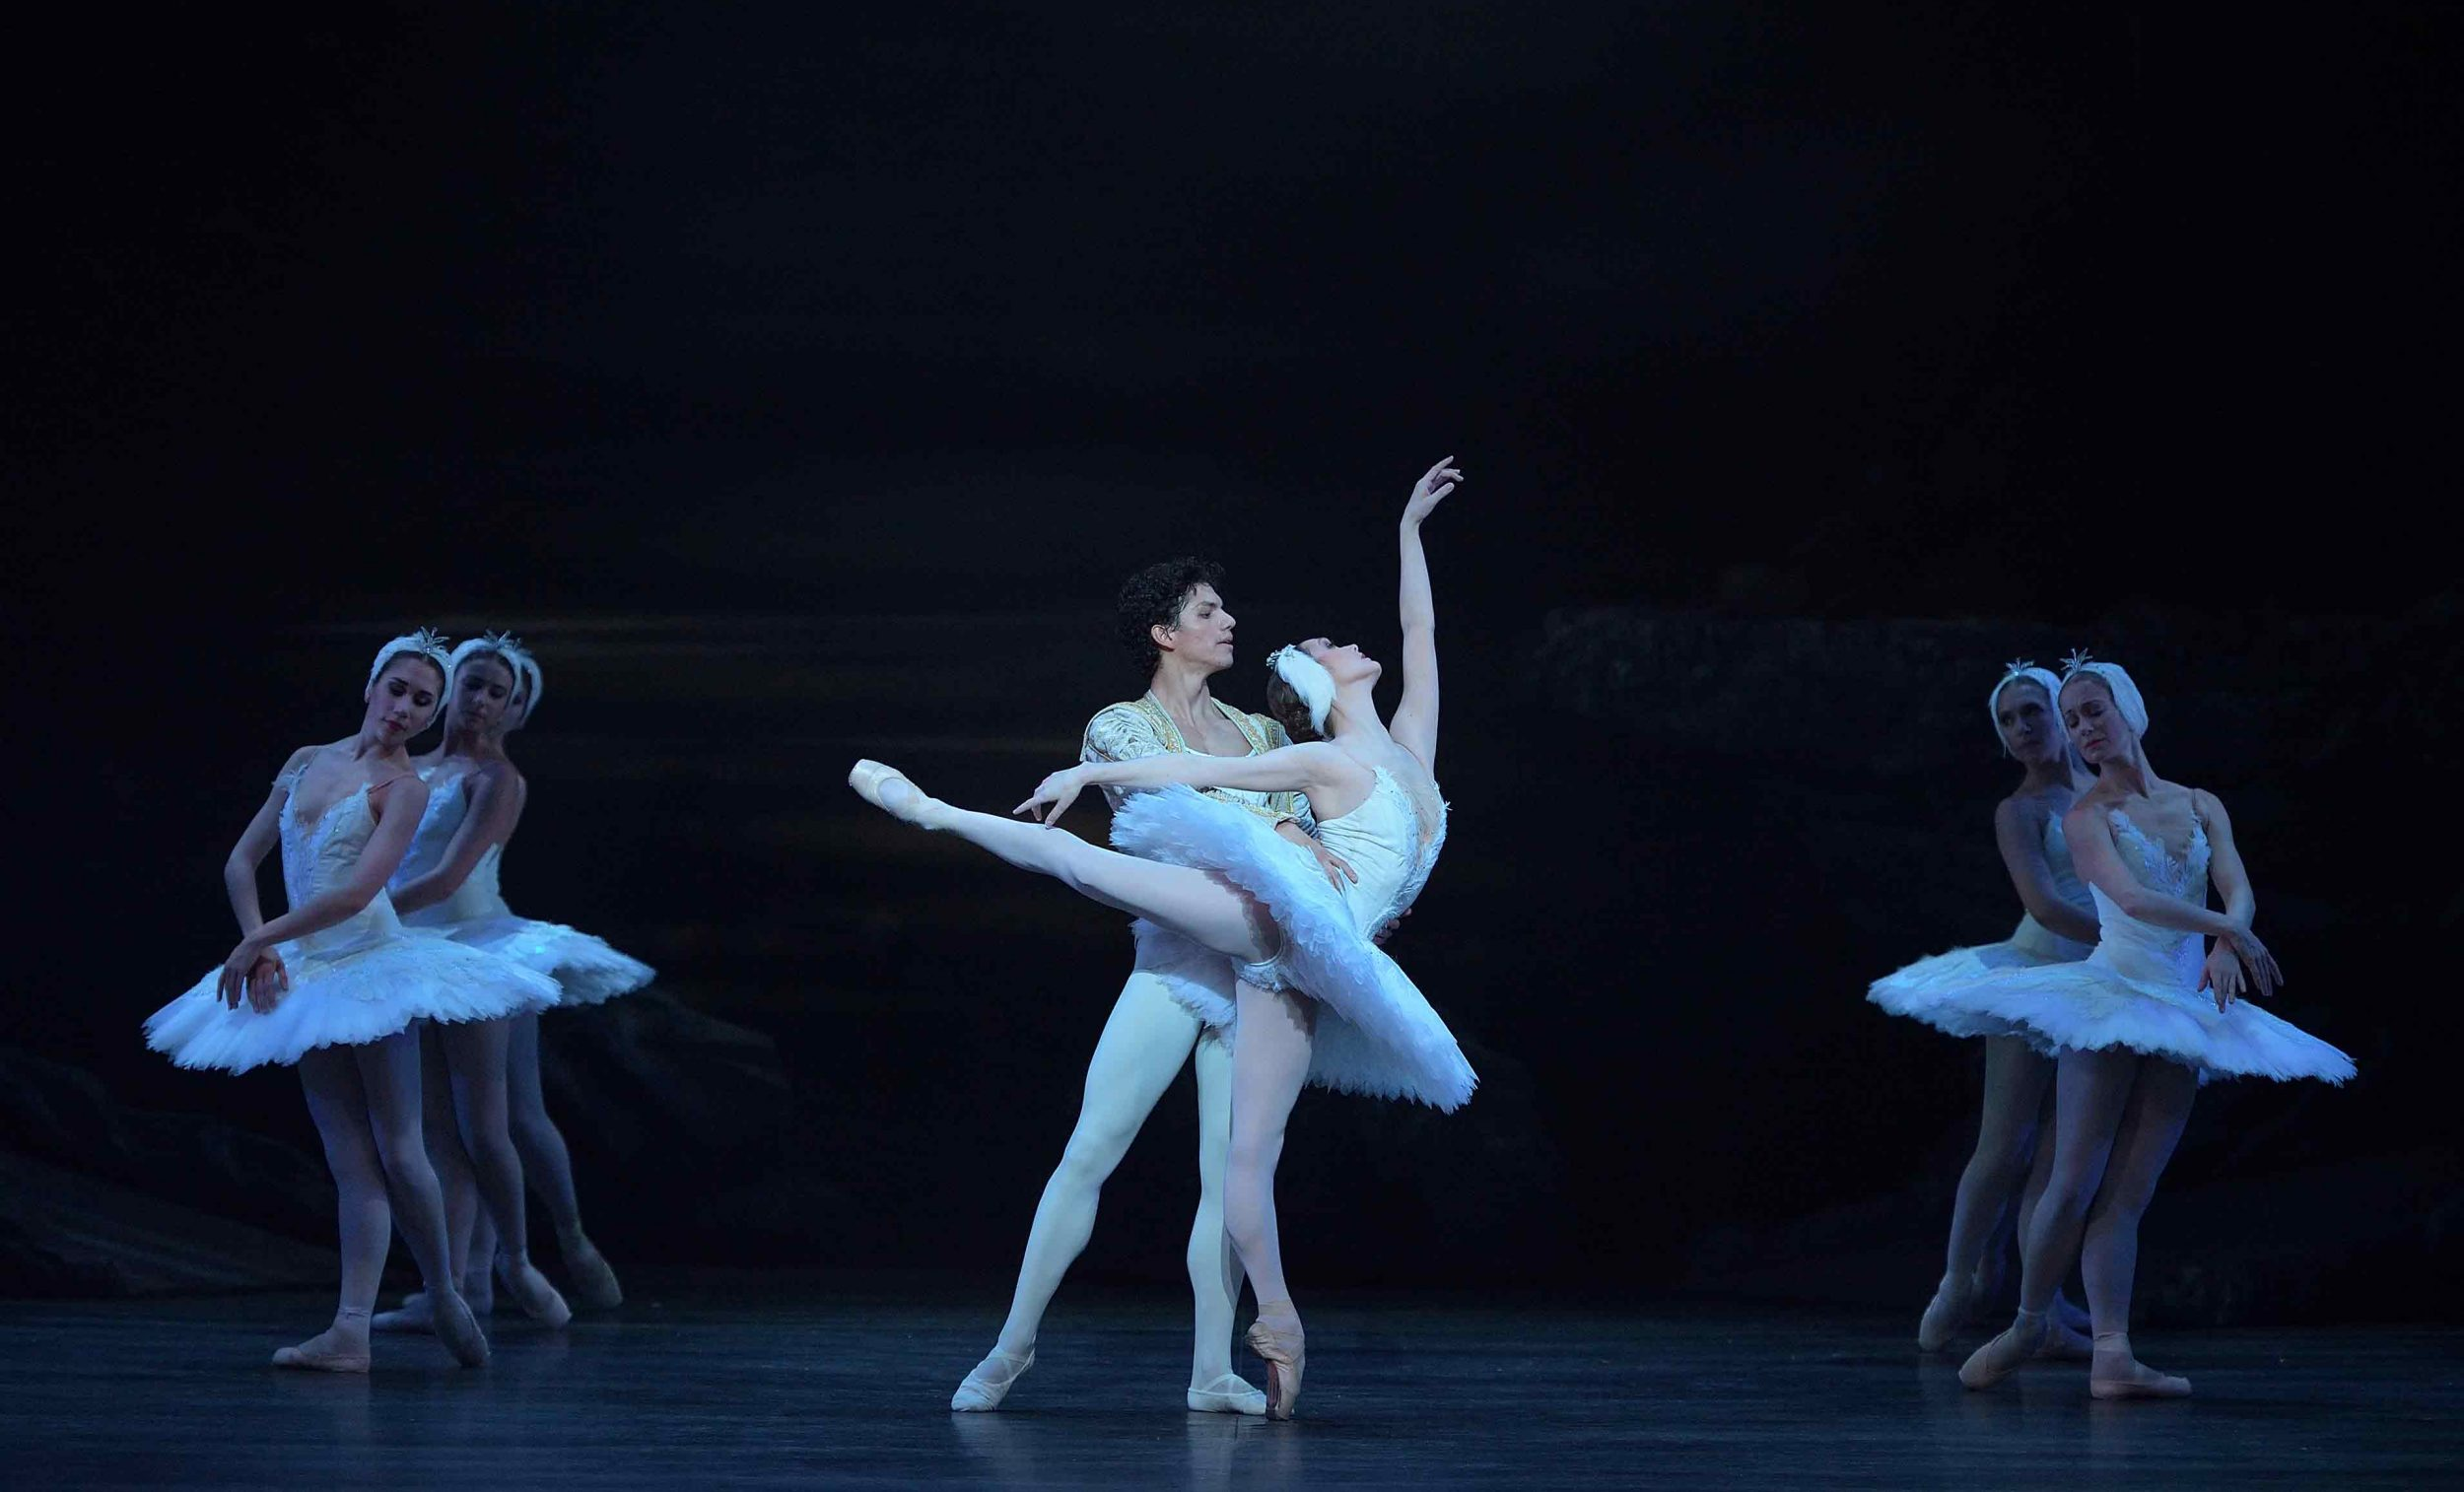 Jurgita-Dronina-and-Isaac-Hernández-in-Swan-Lake-©-Laurent-Liotardo-(5)_WEB